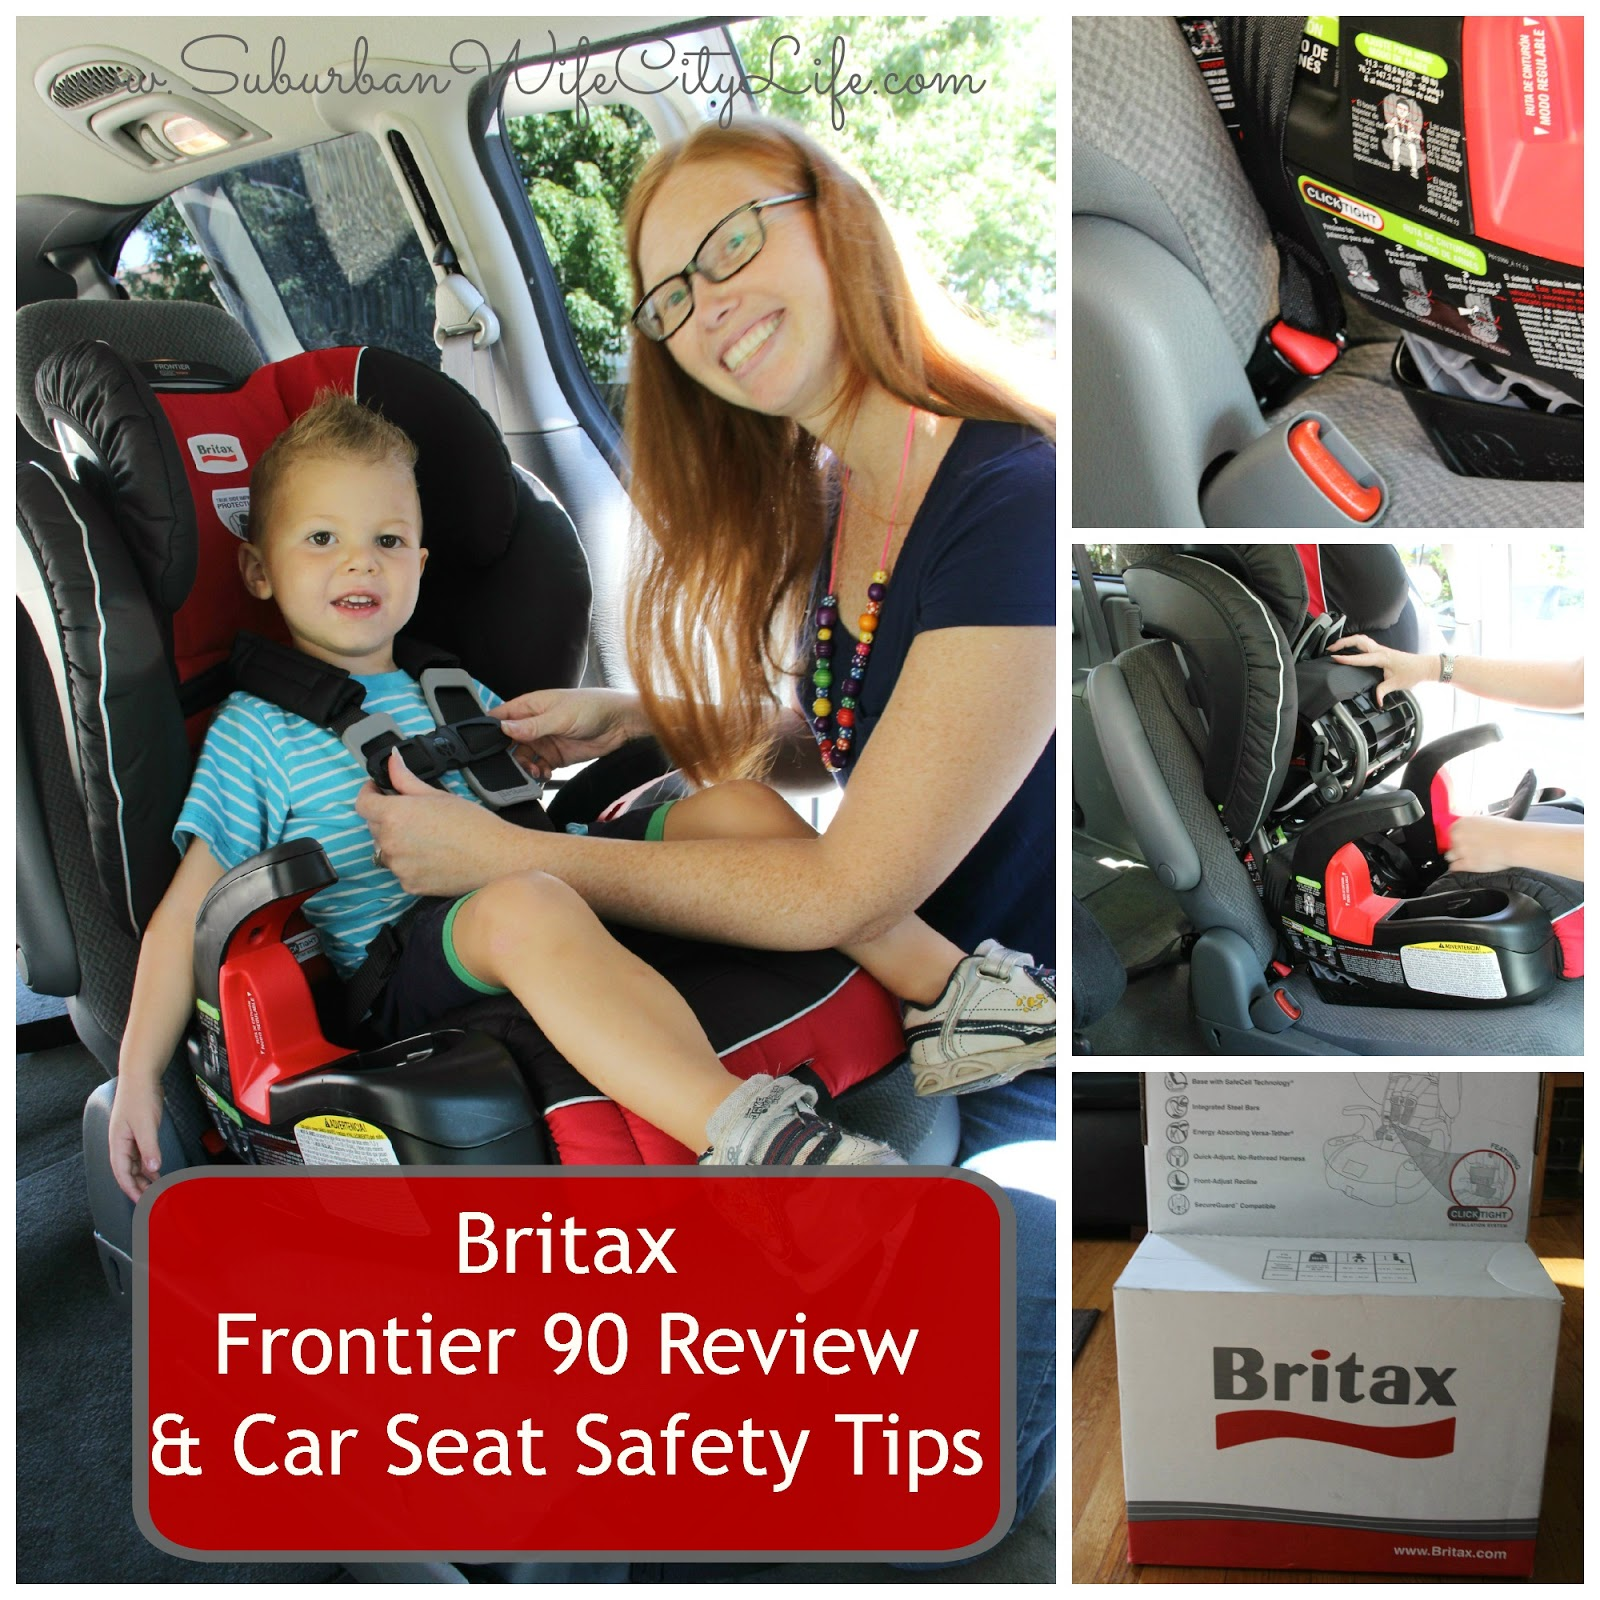 Car Seat Safety Info Britax Frontier 90 Review Suburban Wife